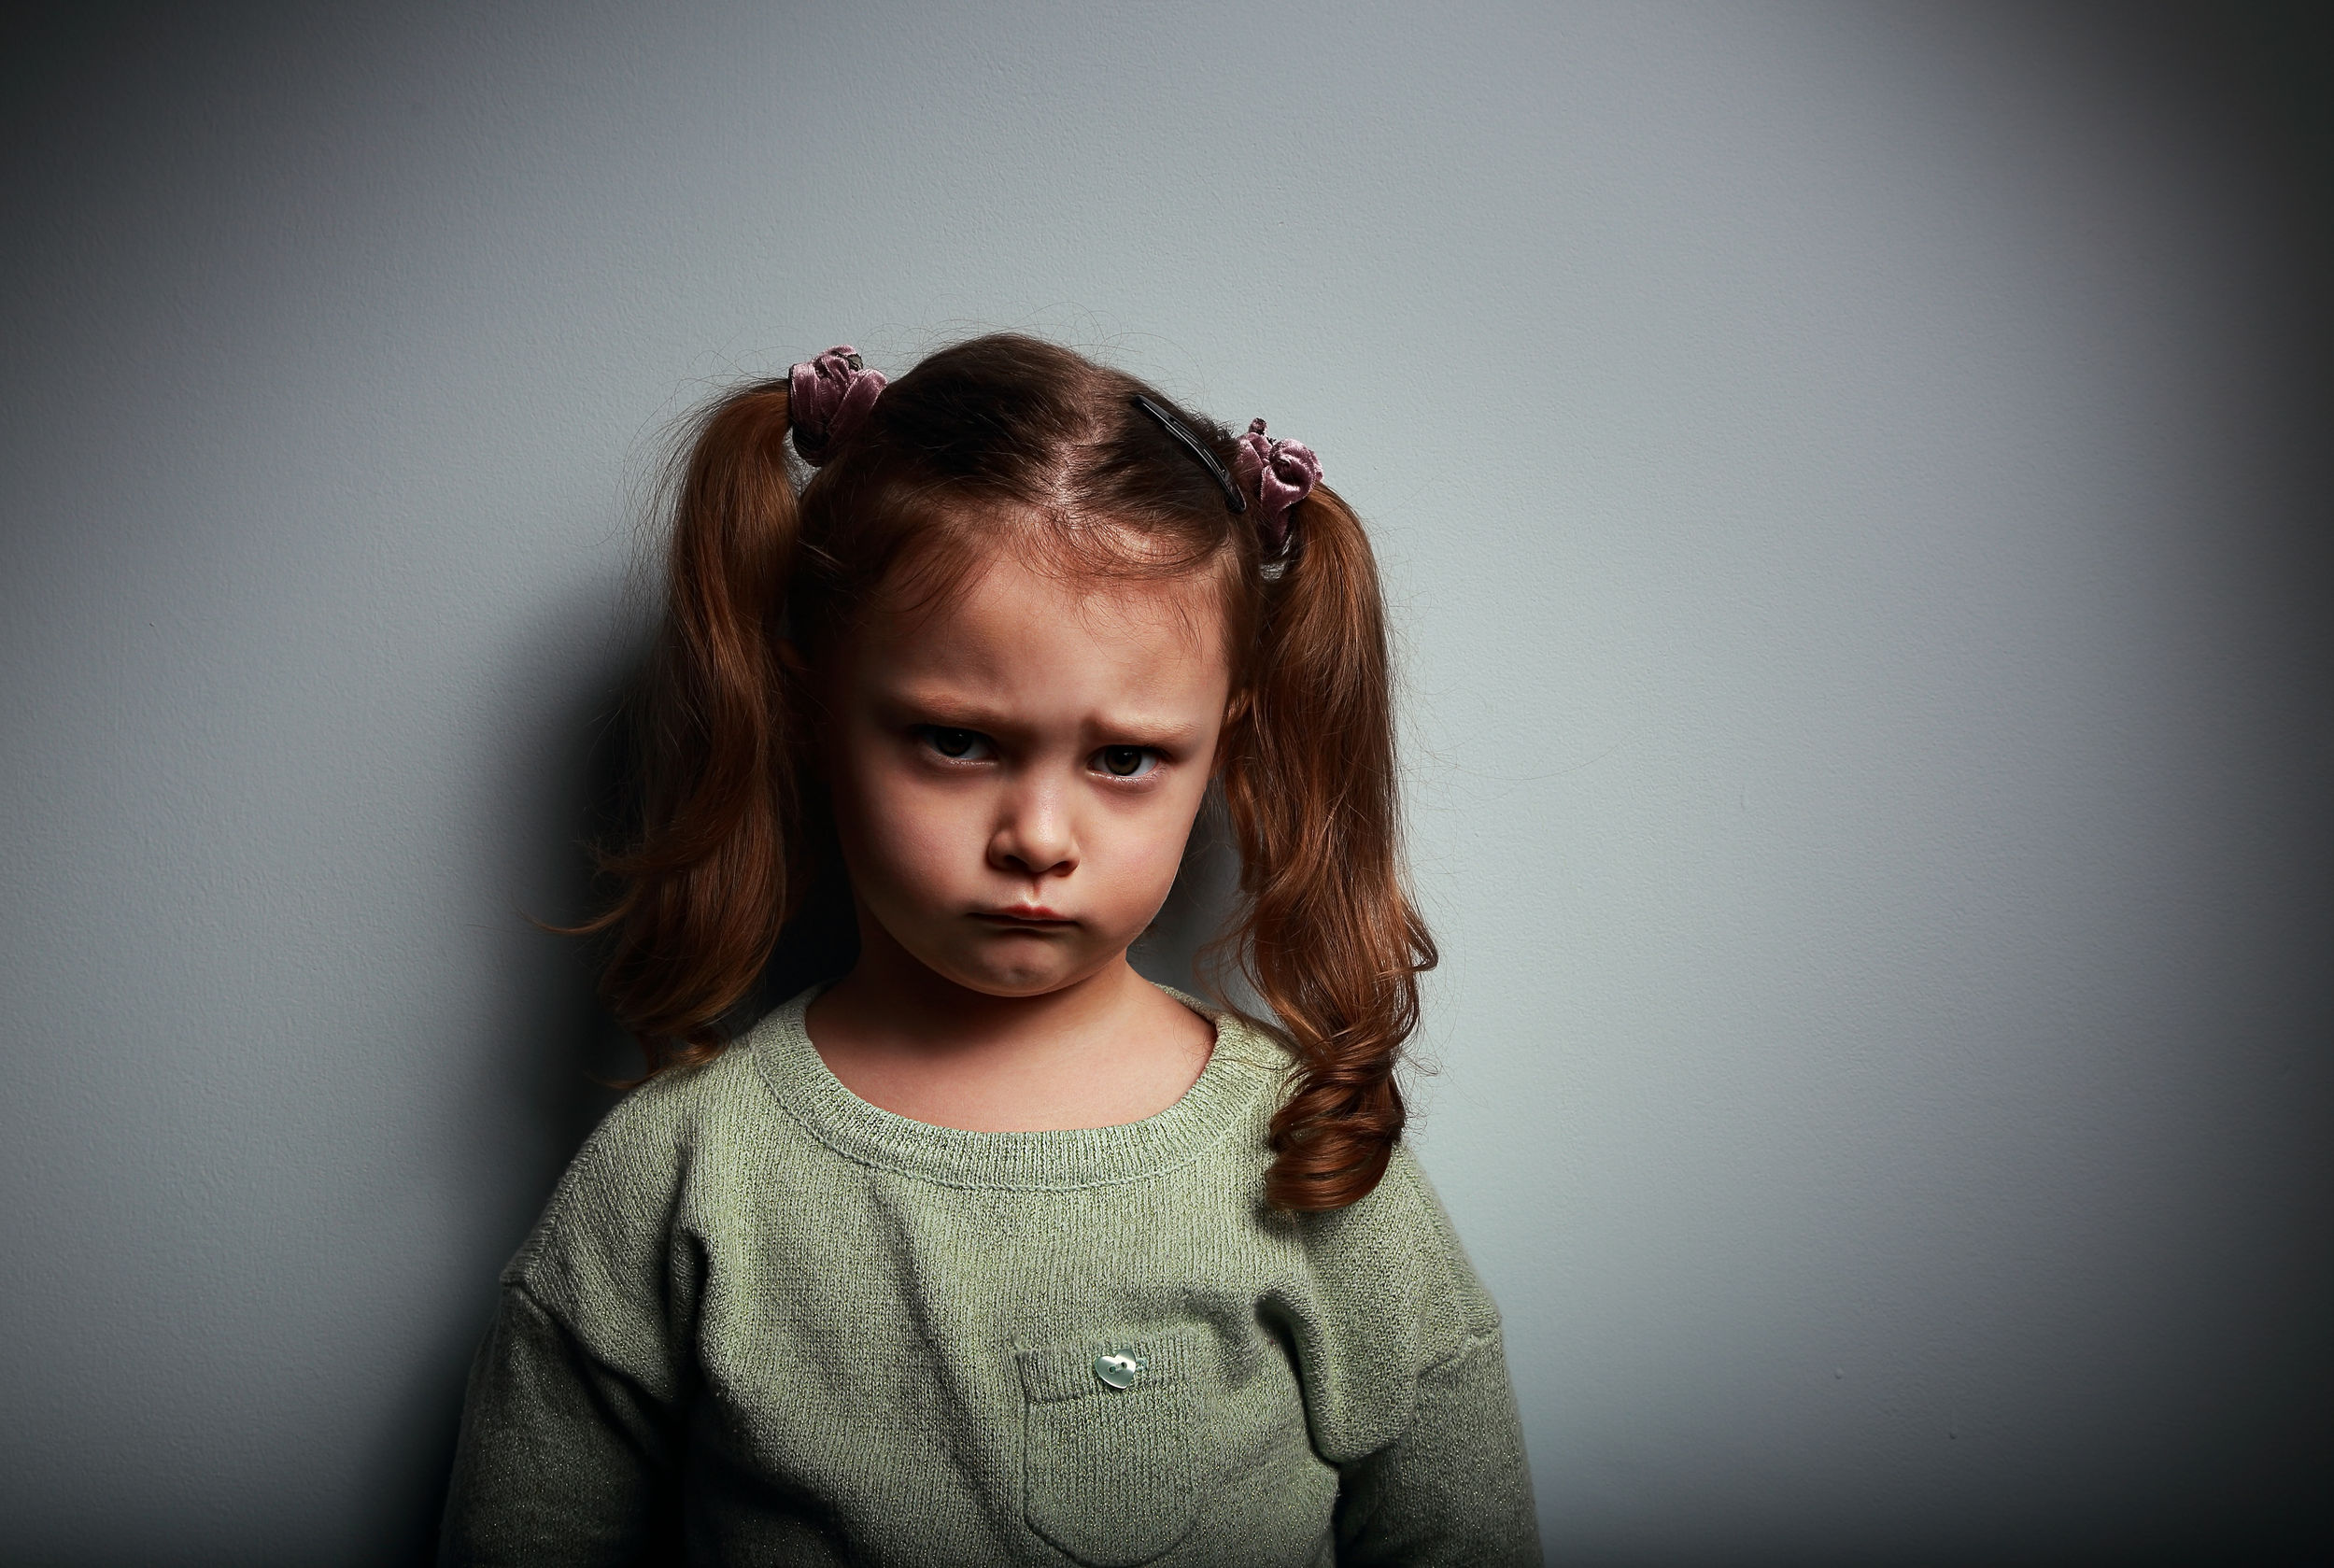 37460258 - Sad Kid Girl Looking With Very Unhappy Face On -2825